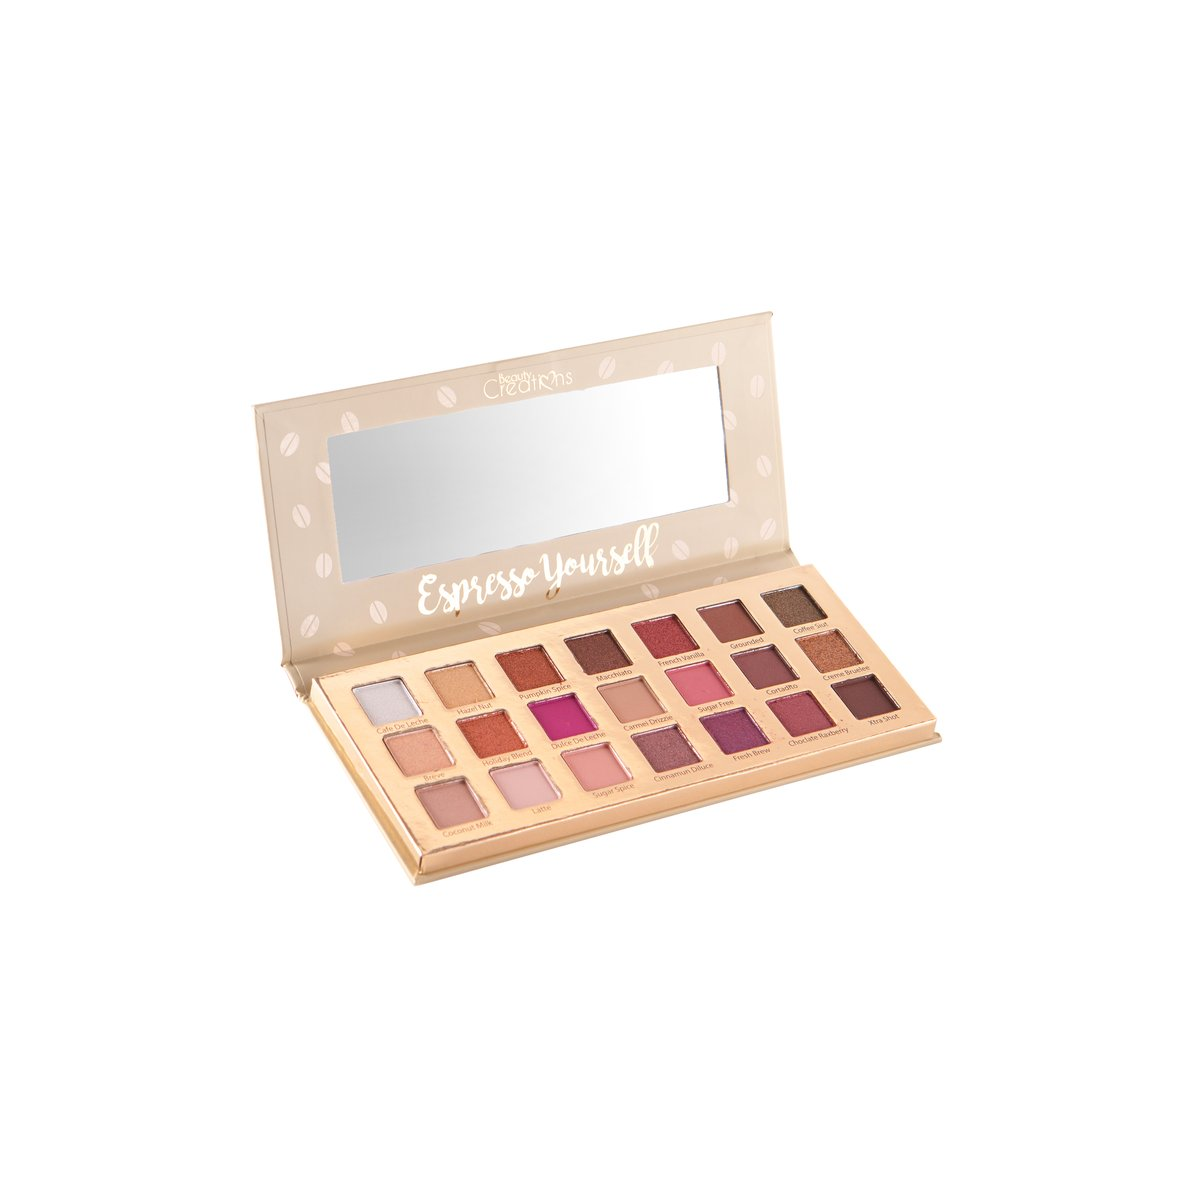 ESPRESSO YOURSELF EYESHADOW PALETE